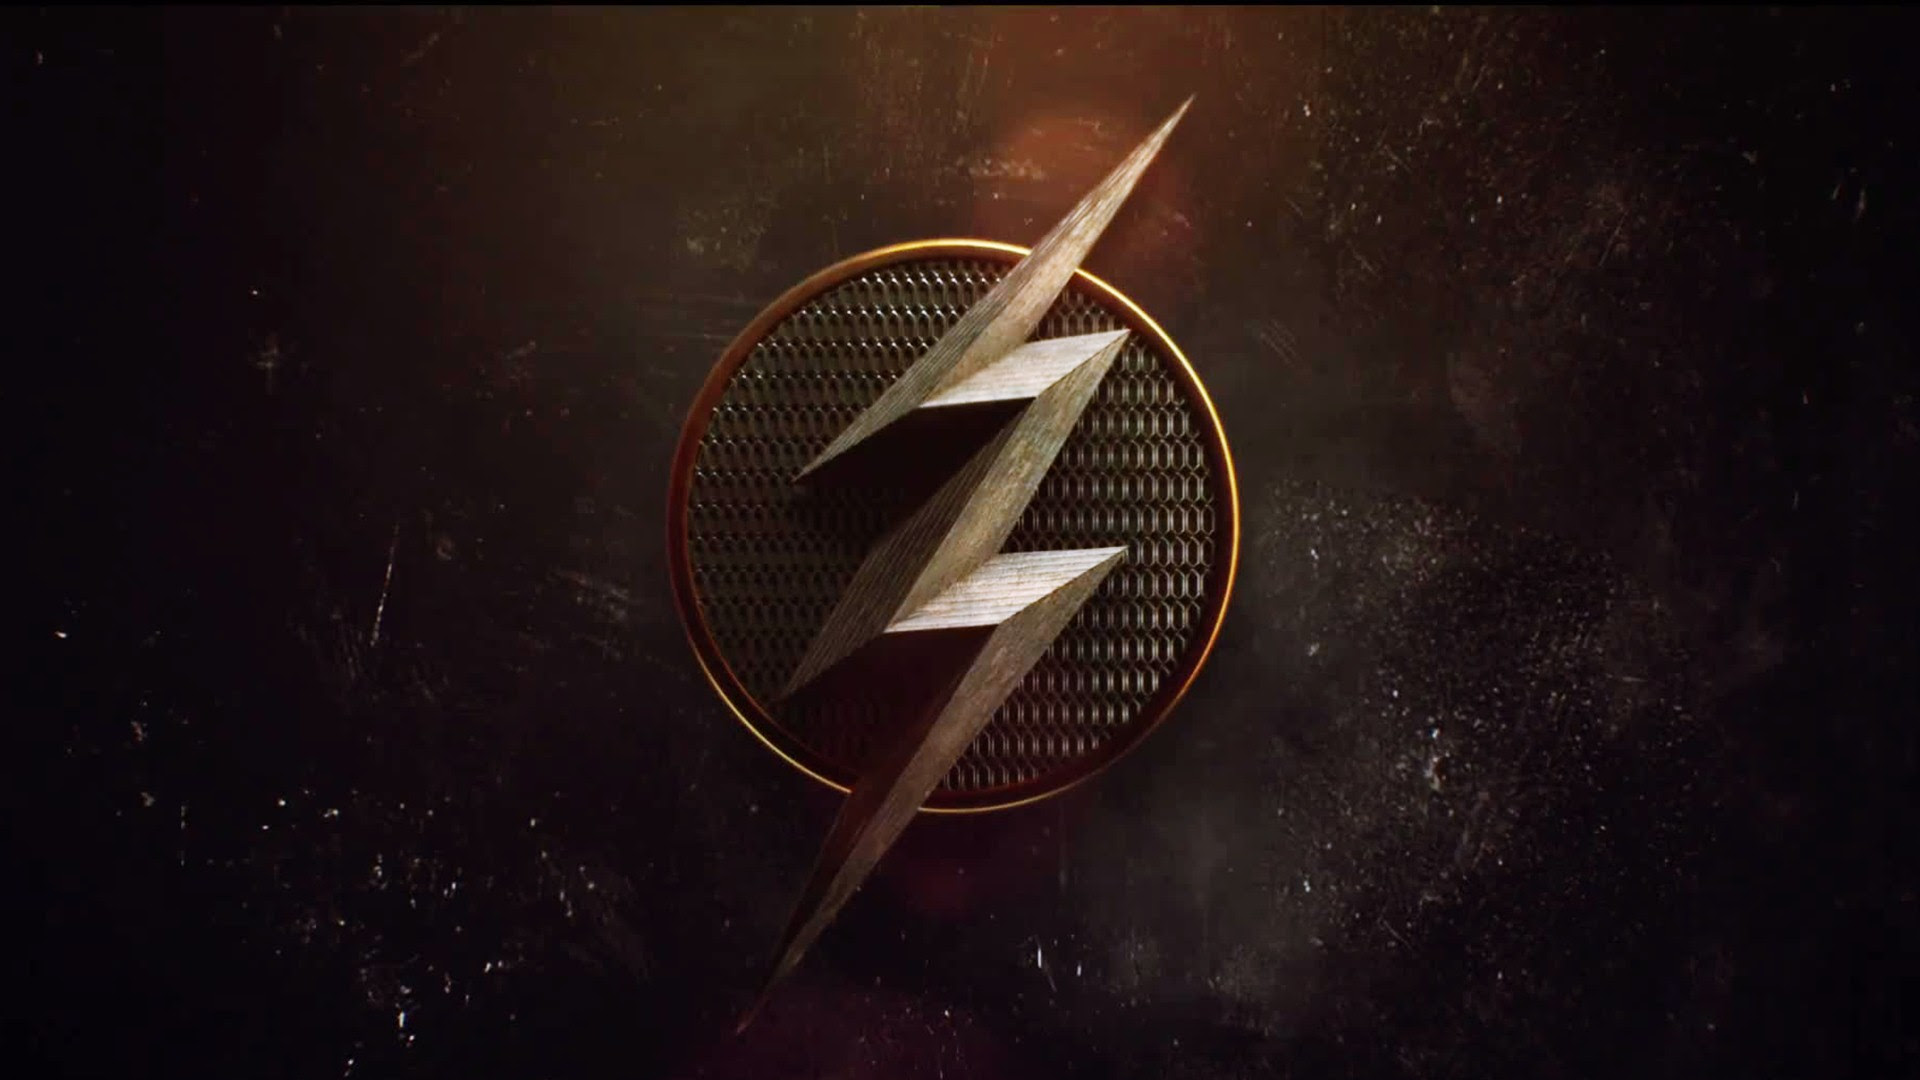 The Flash Wallpapers Hd Backgrounds Images Pics Photos Free